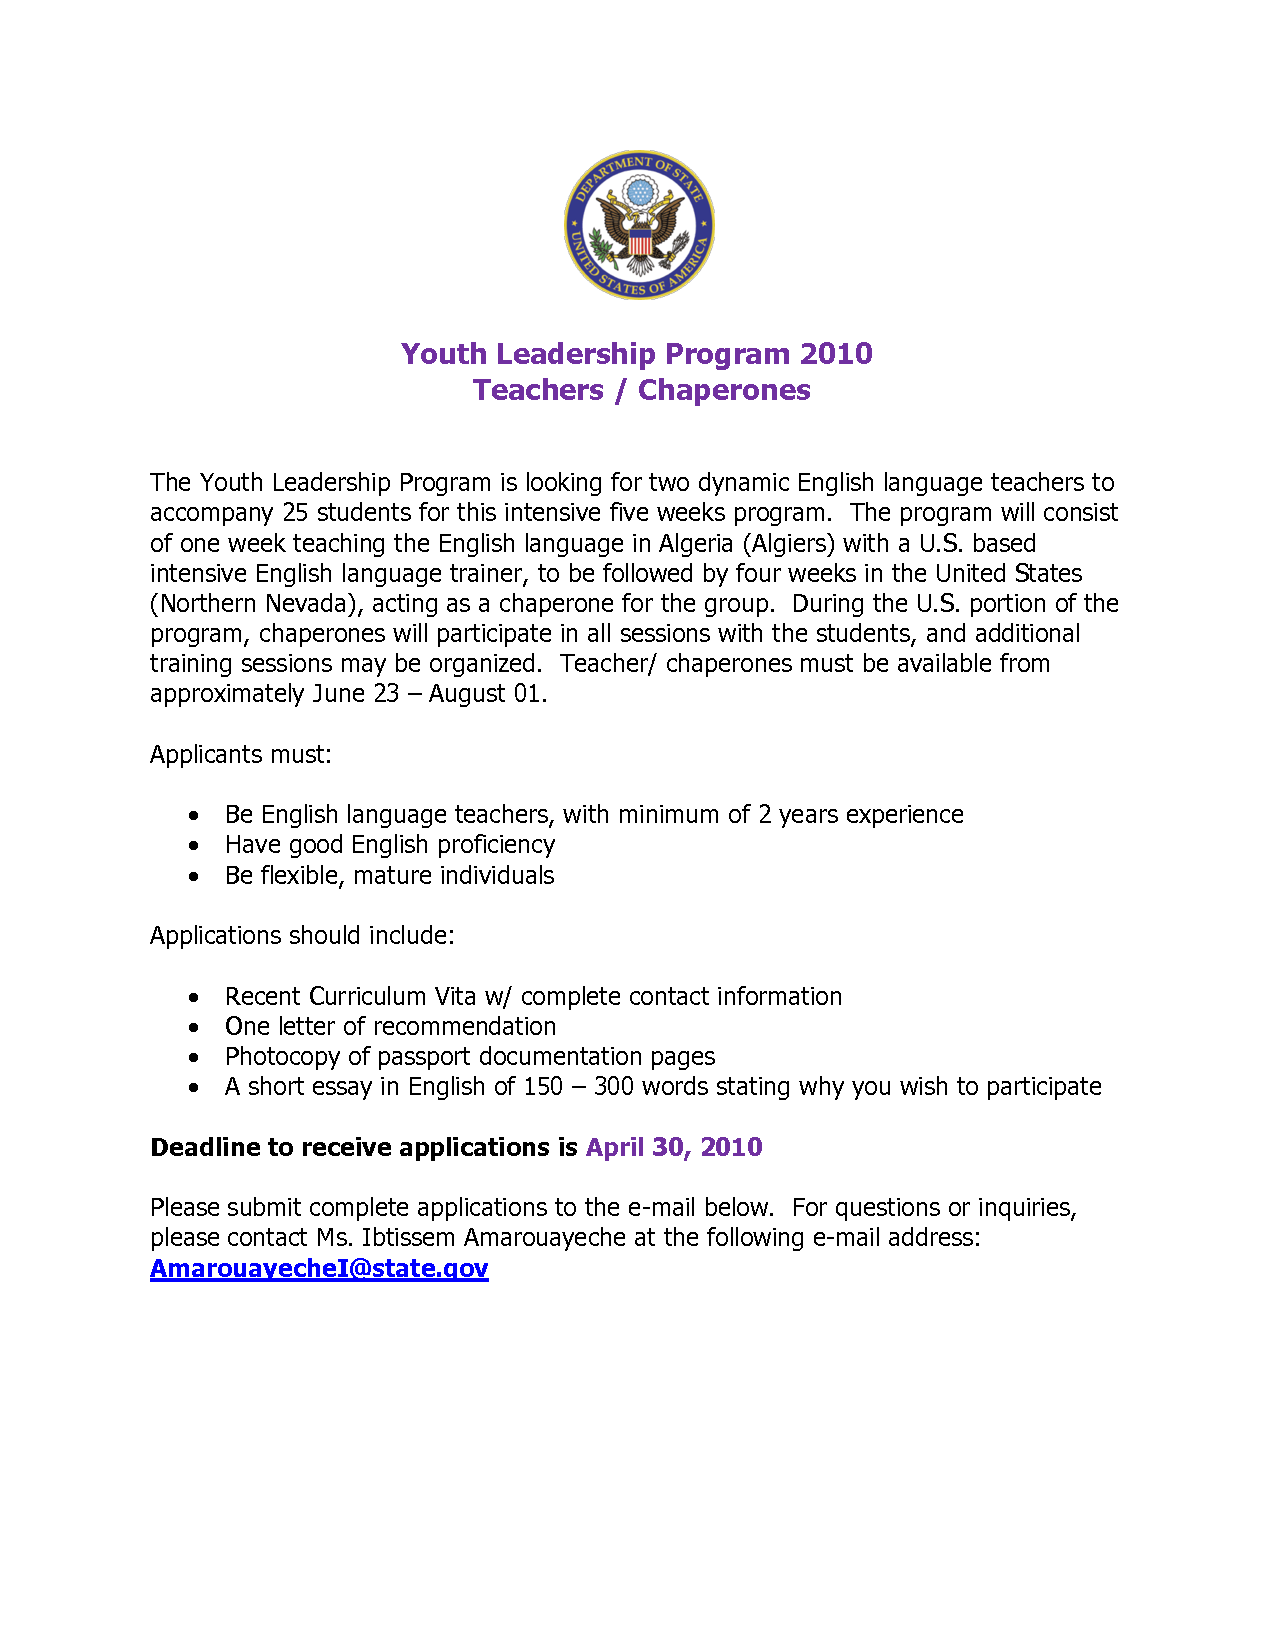 essay letters nursing leadership program Youth